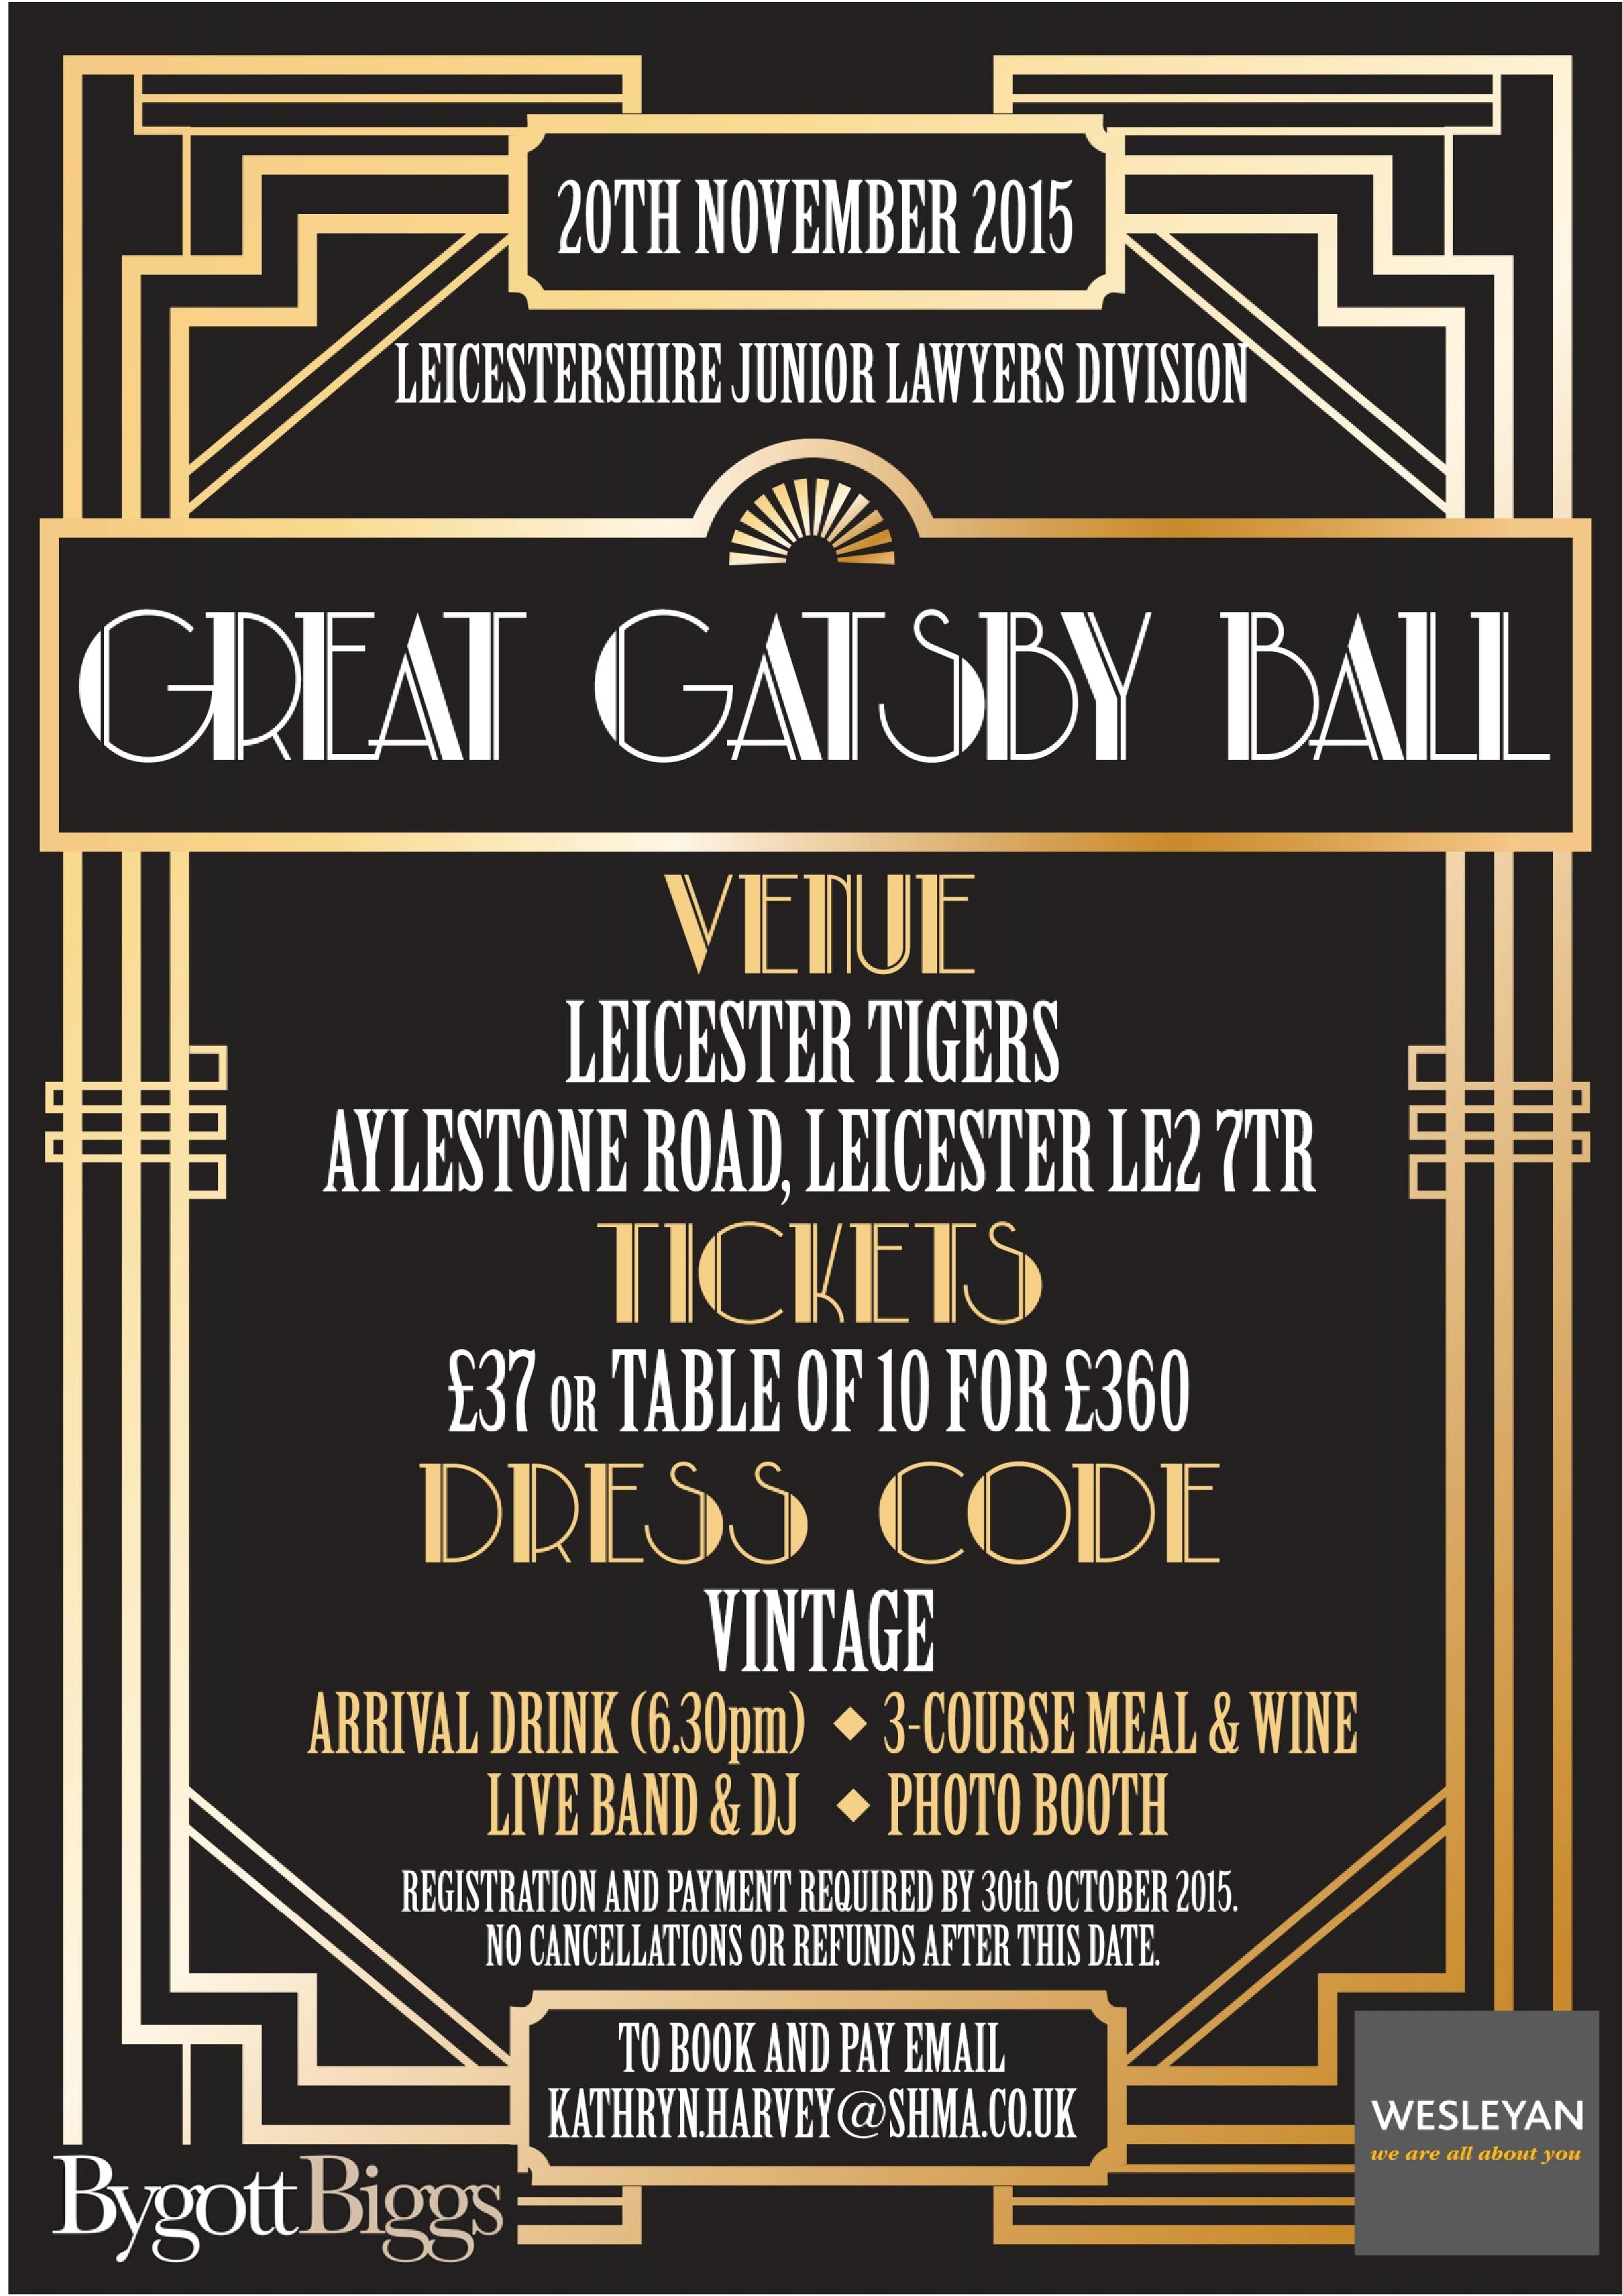 great gatsby holiday party invitations awesome magnificent gatsby party invite image invitations design